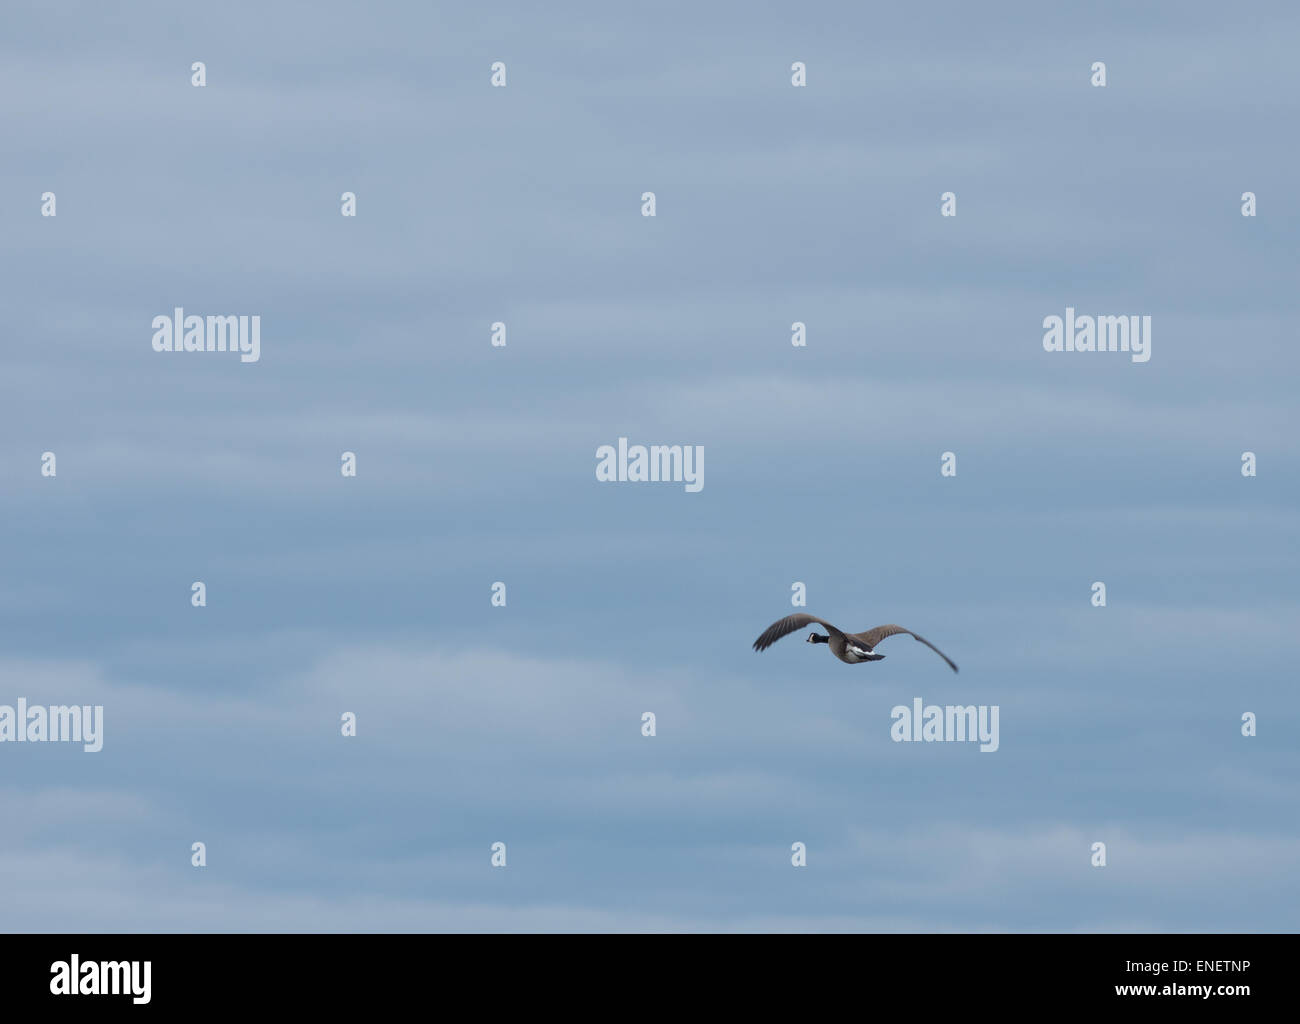 Lone Canadian goose against a cloudy sky - Stock Image